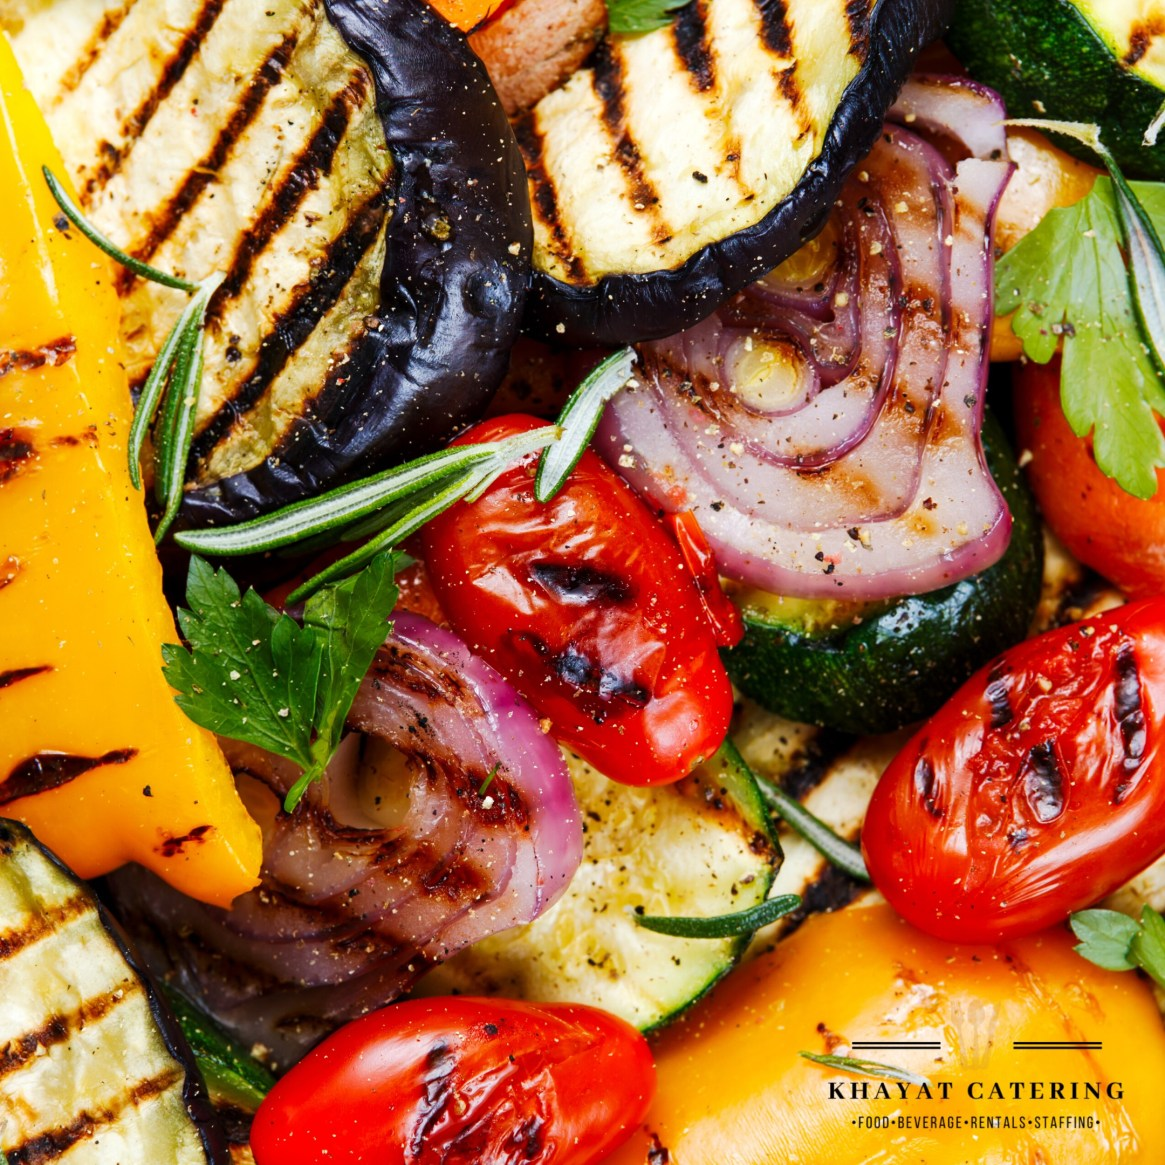 Khayat Catering balsamic grilled vegetables